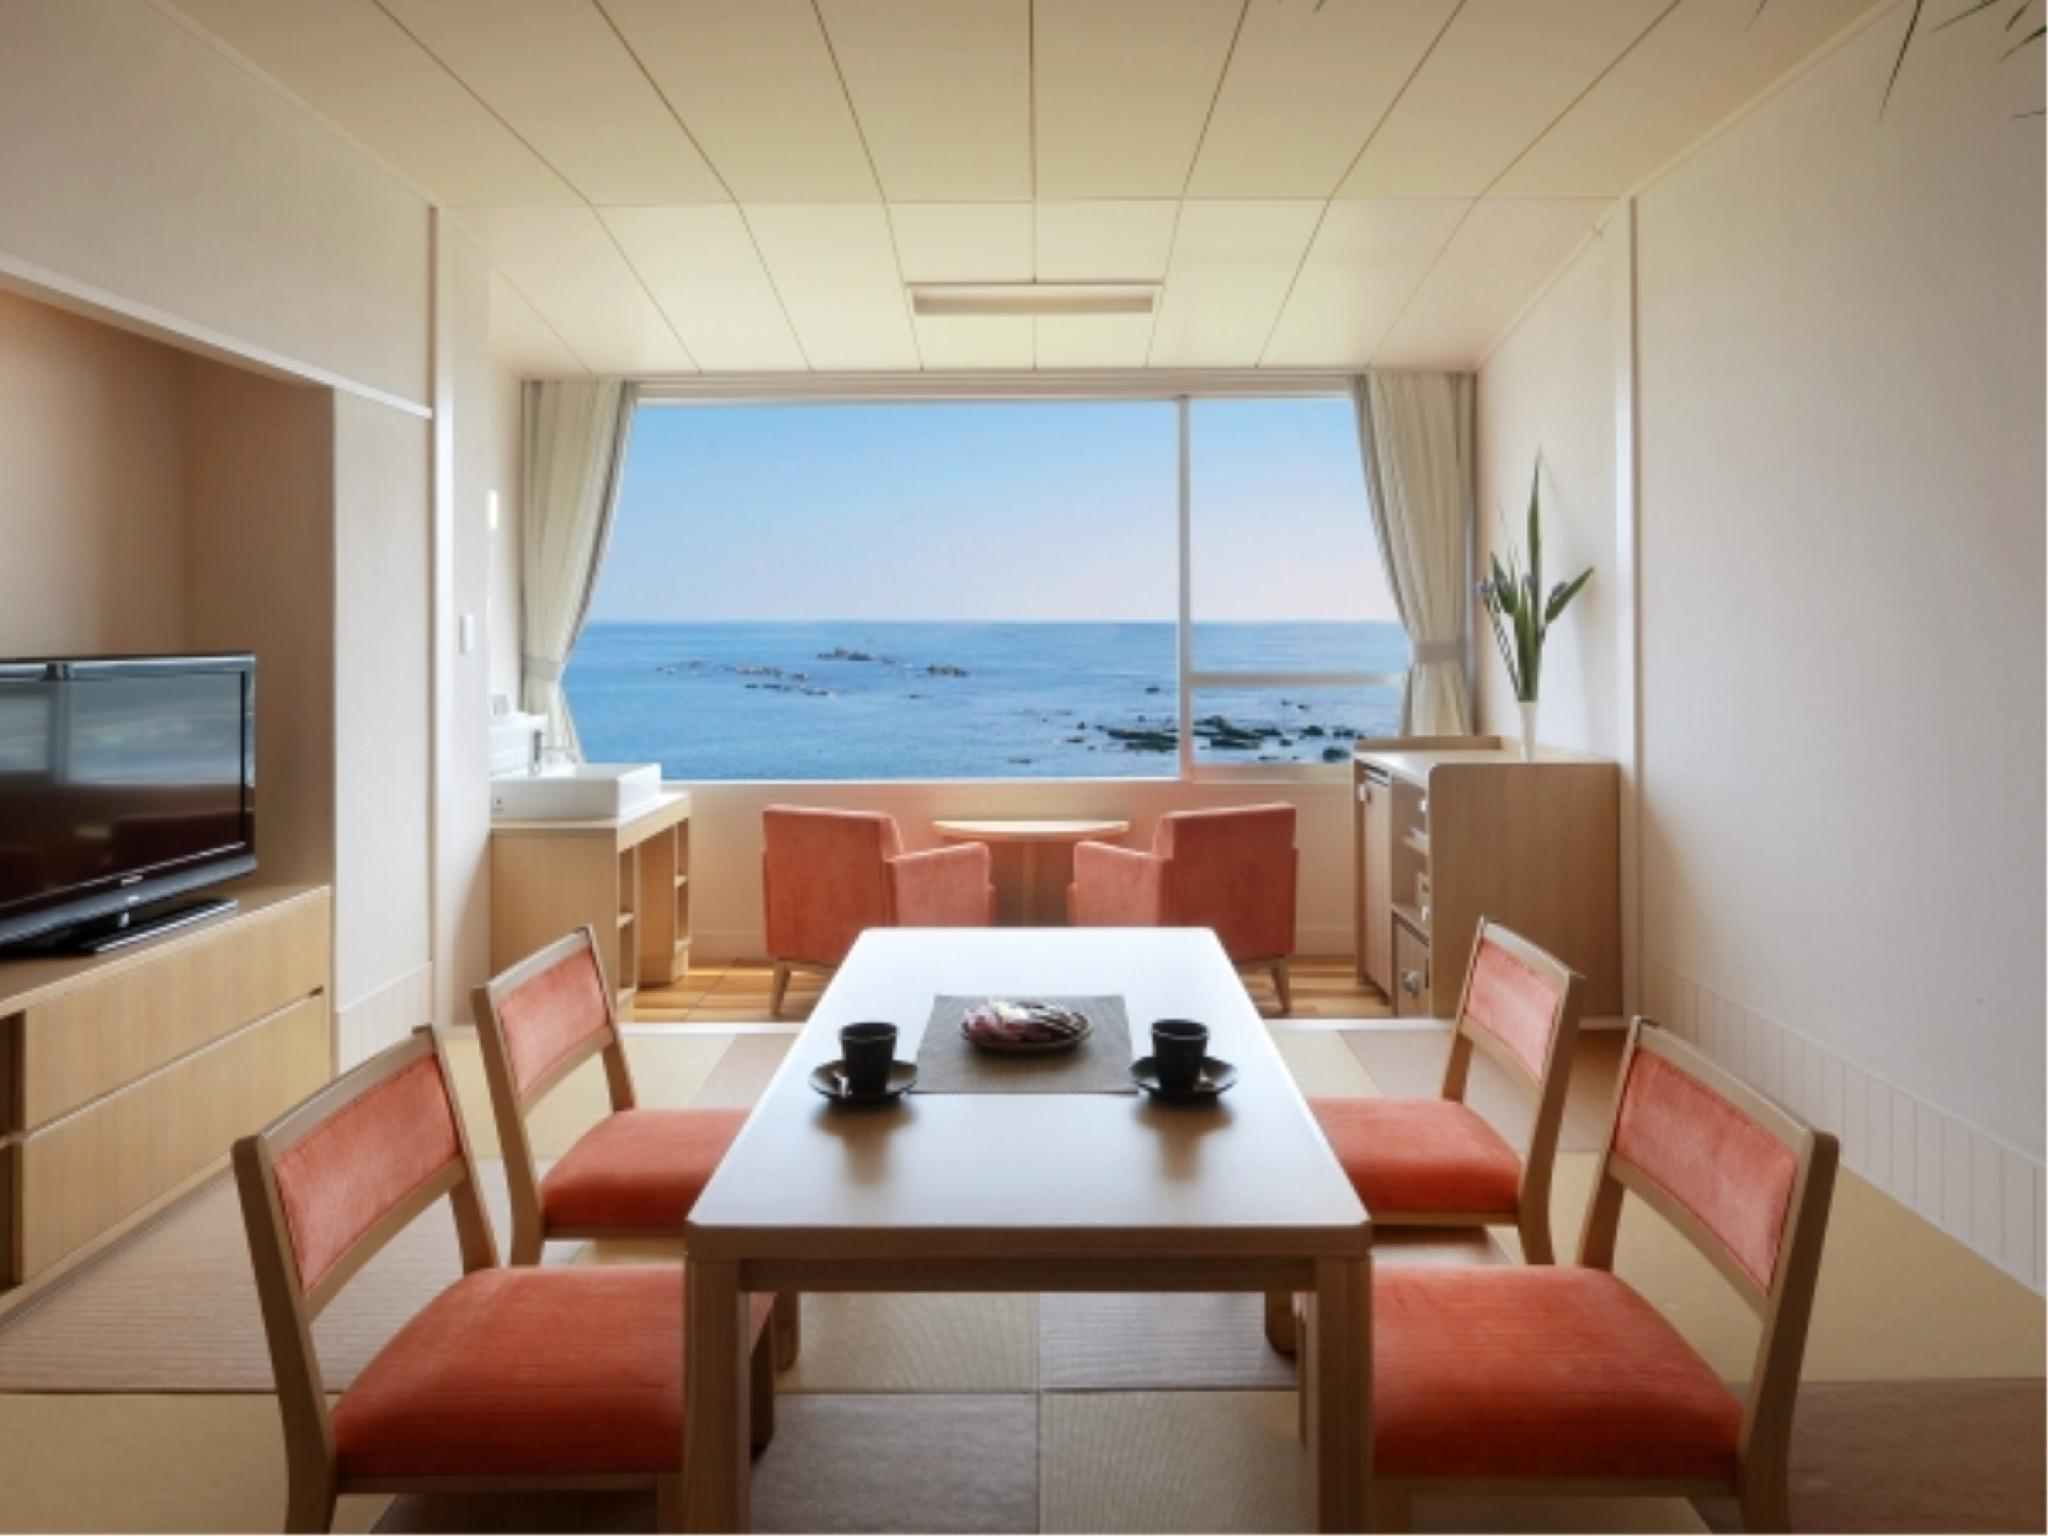 【禁煙】☆上層階☆琉球畳和室10畳(ペット同伴不可)|10畳 (Japanese-style Room (Upper Floors, Okinawan Tatami Flooring) *No pets)